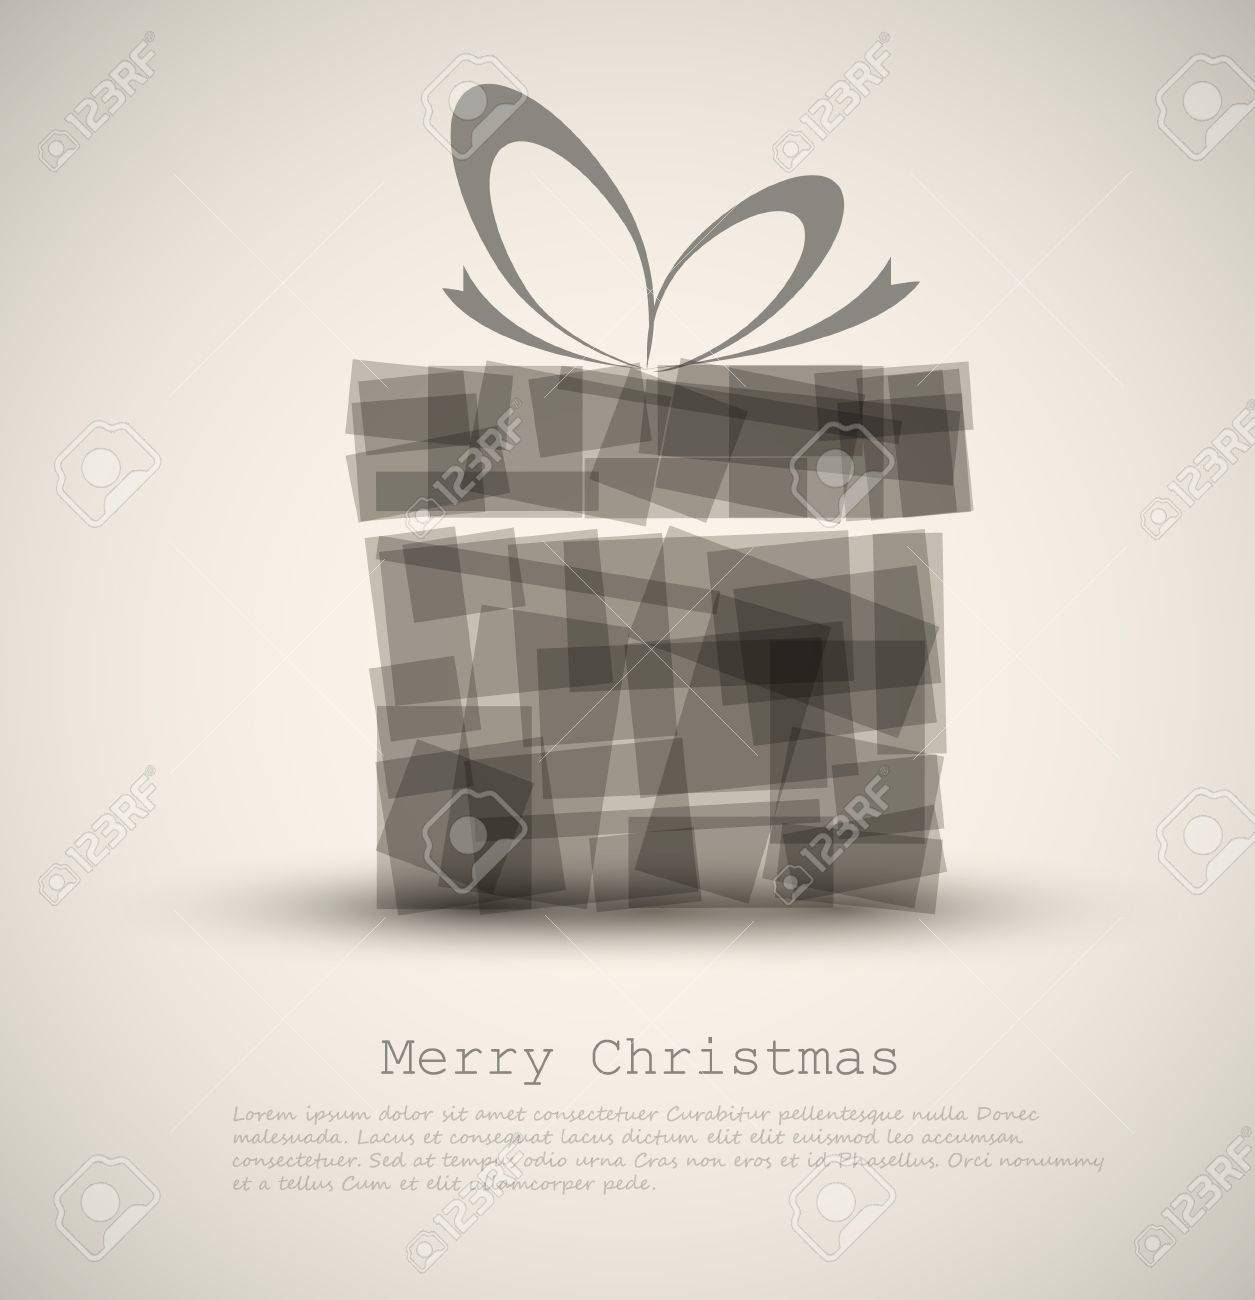 Simple Christmas card with a gift made from rectangles Stock Vector - 11273126